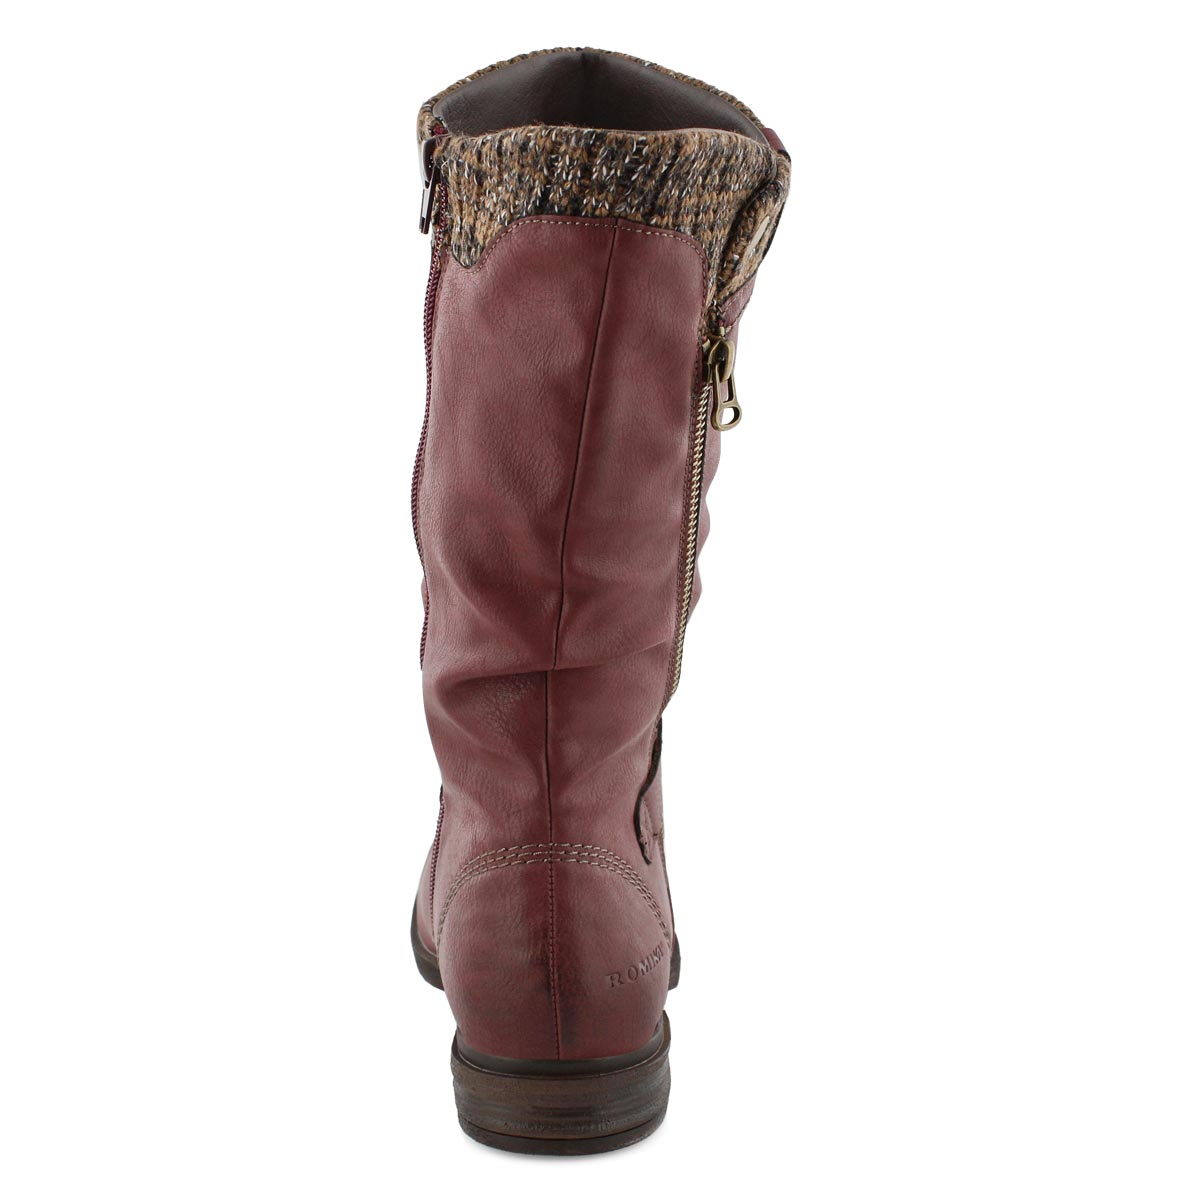 Lds Venus 05 bordo mid calf boot